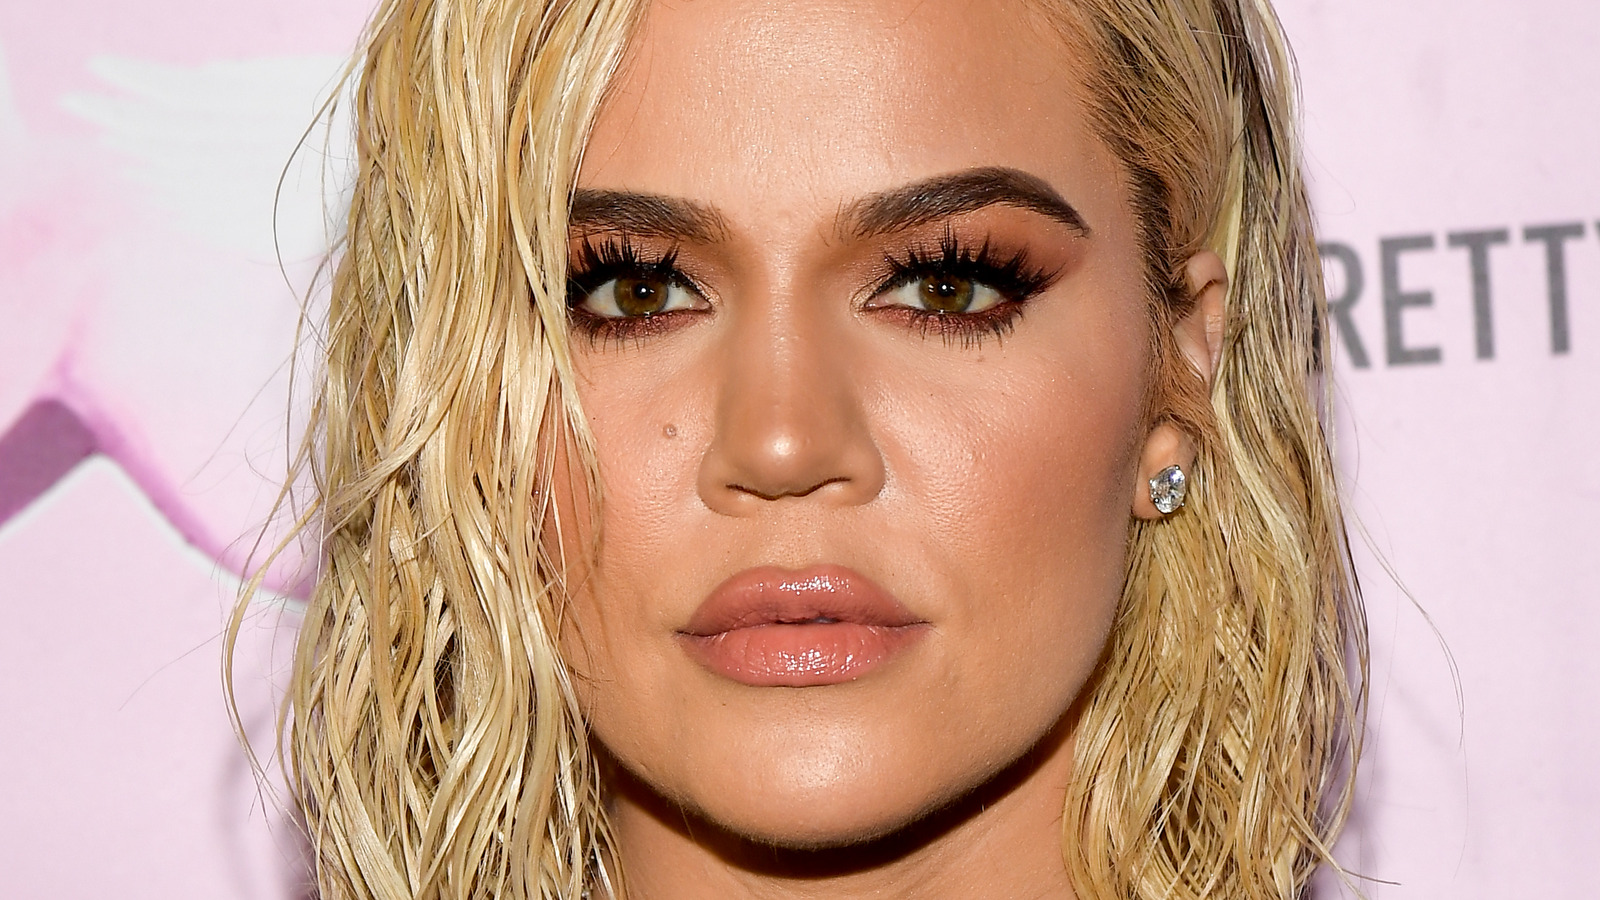 The Unsaid Reason Khloe Kardashian Is Facing Heat For Working With Shein Clothing Company